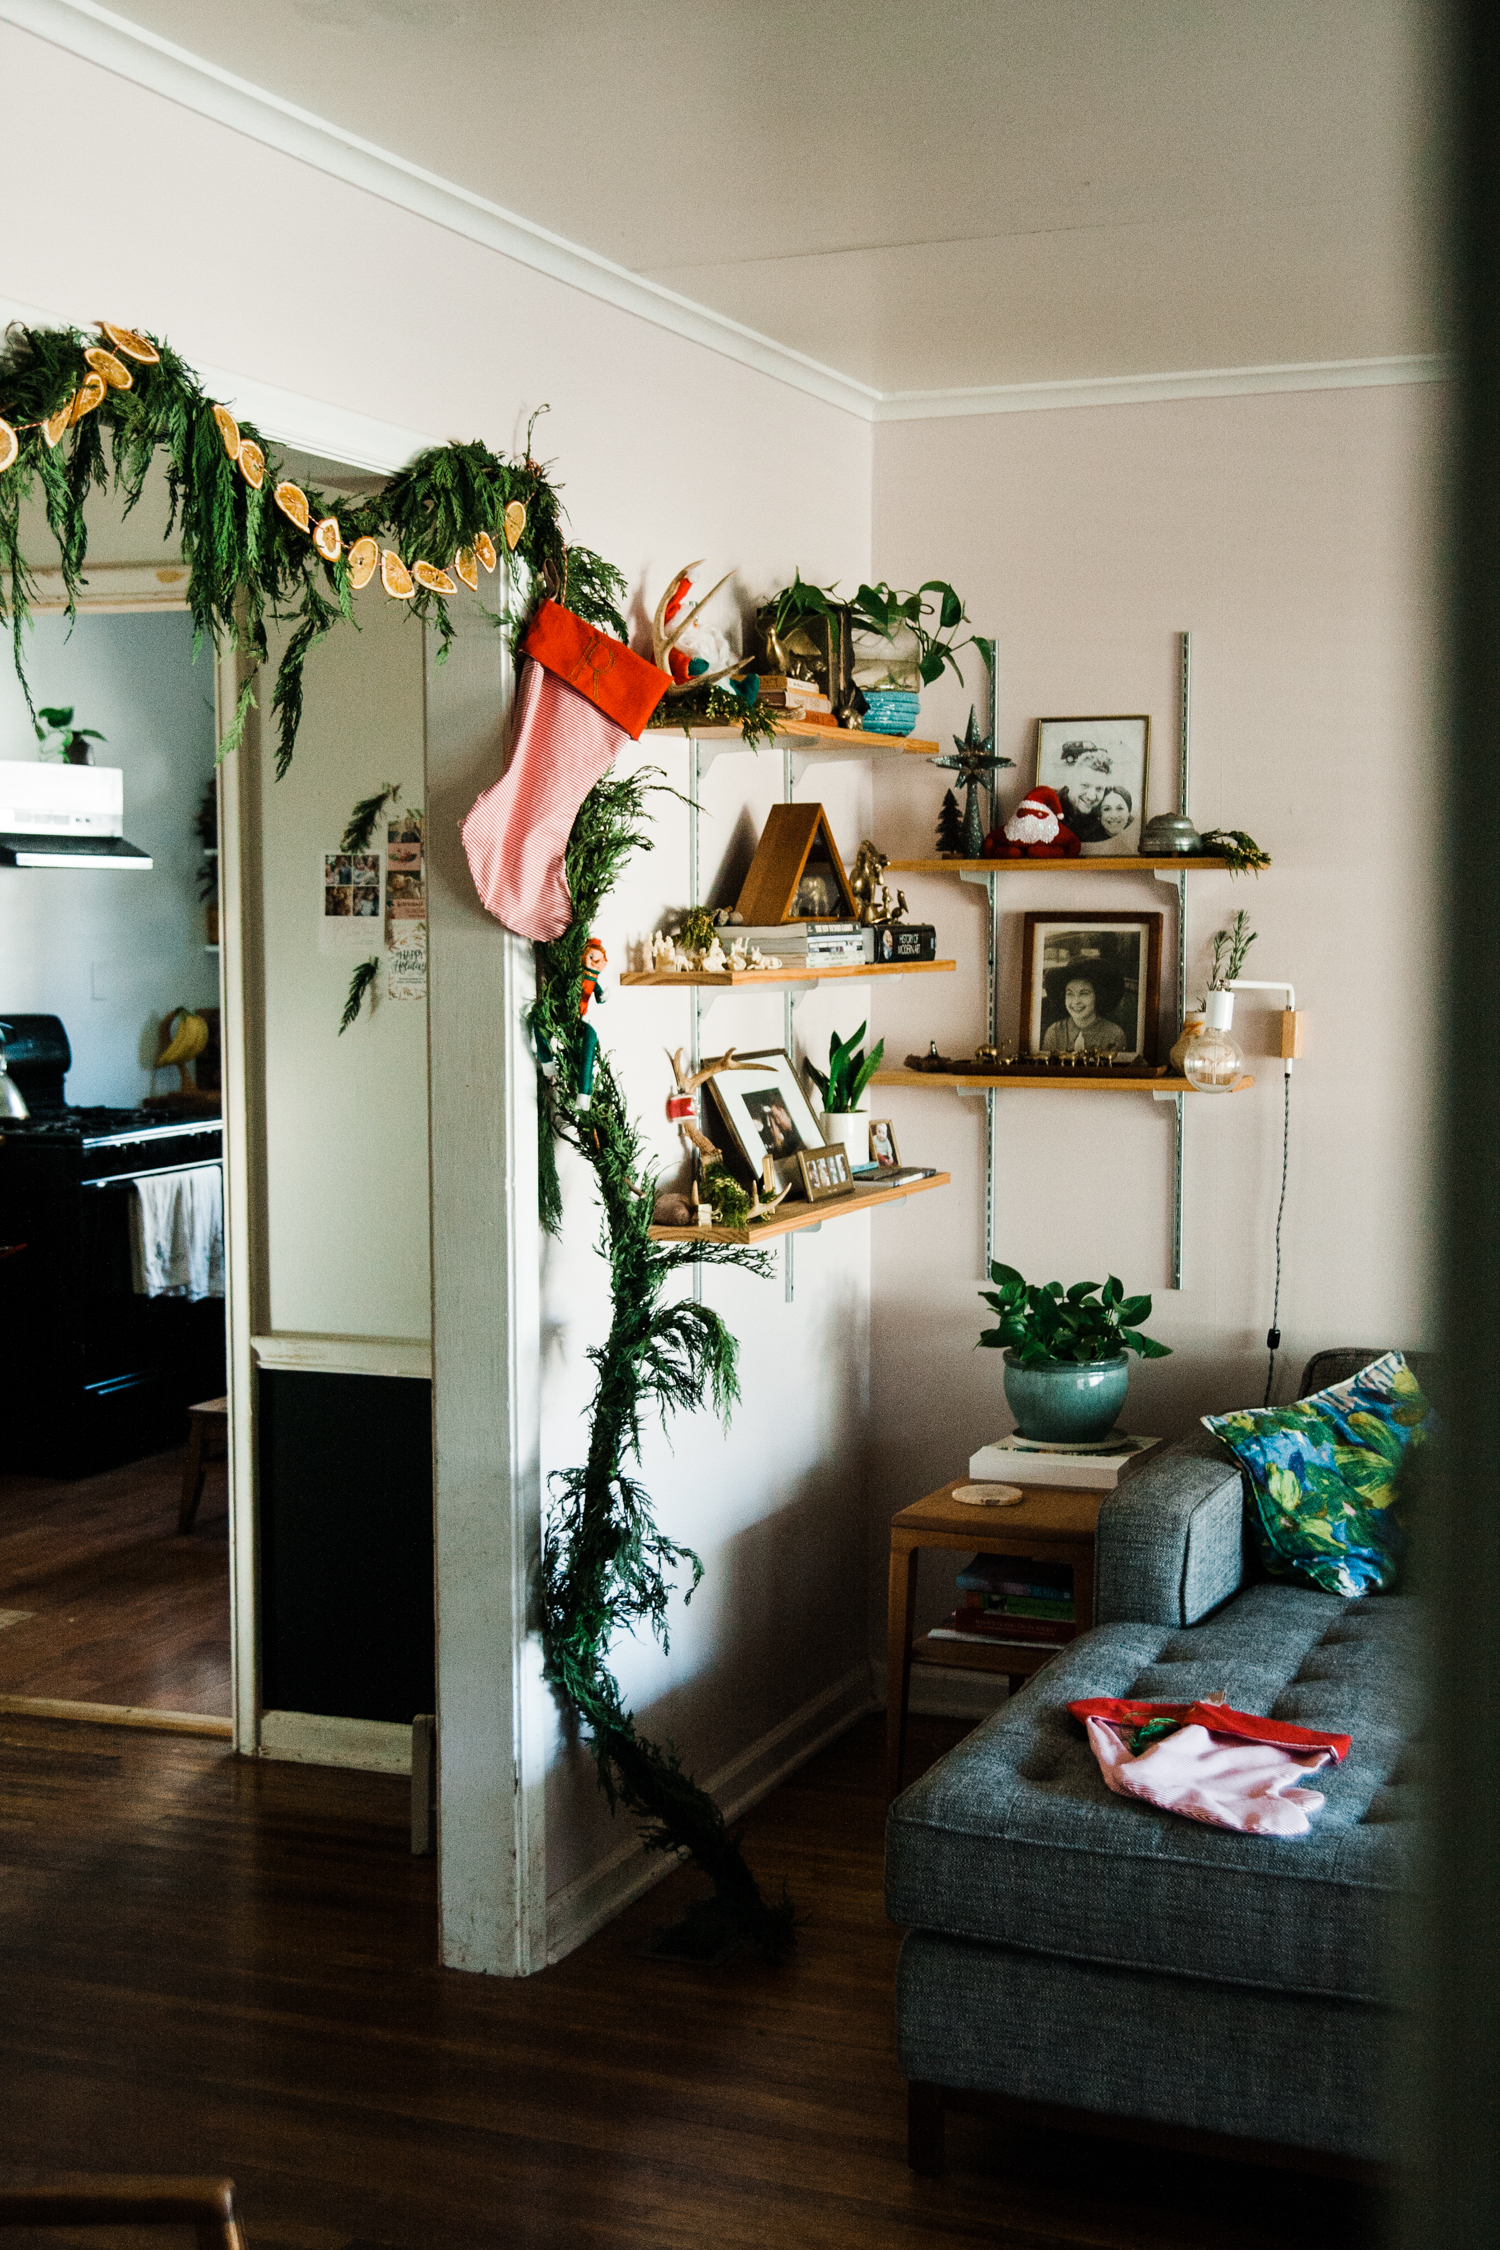 daly holiday home tour-40.jpg